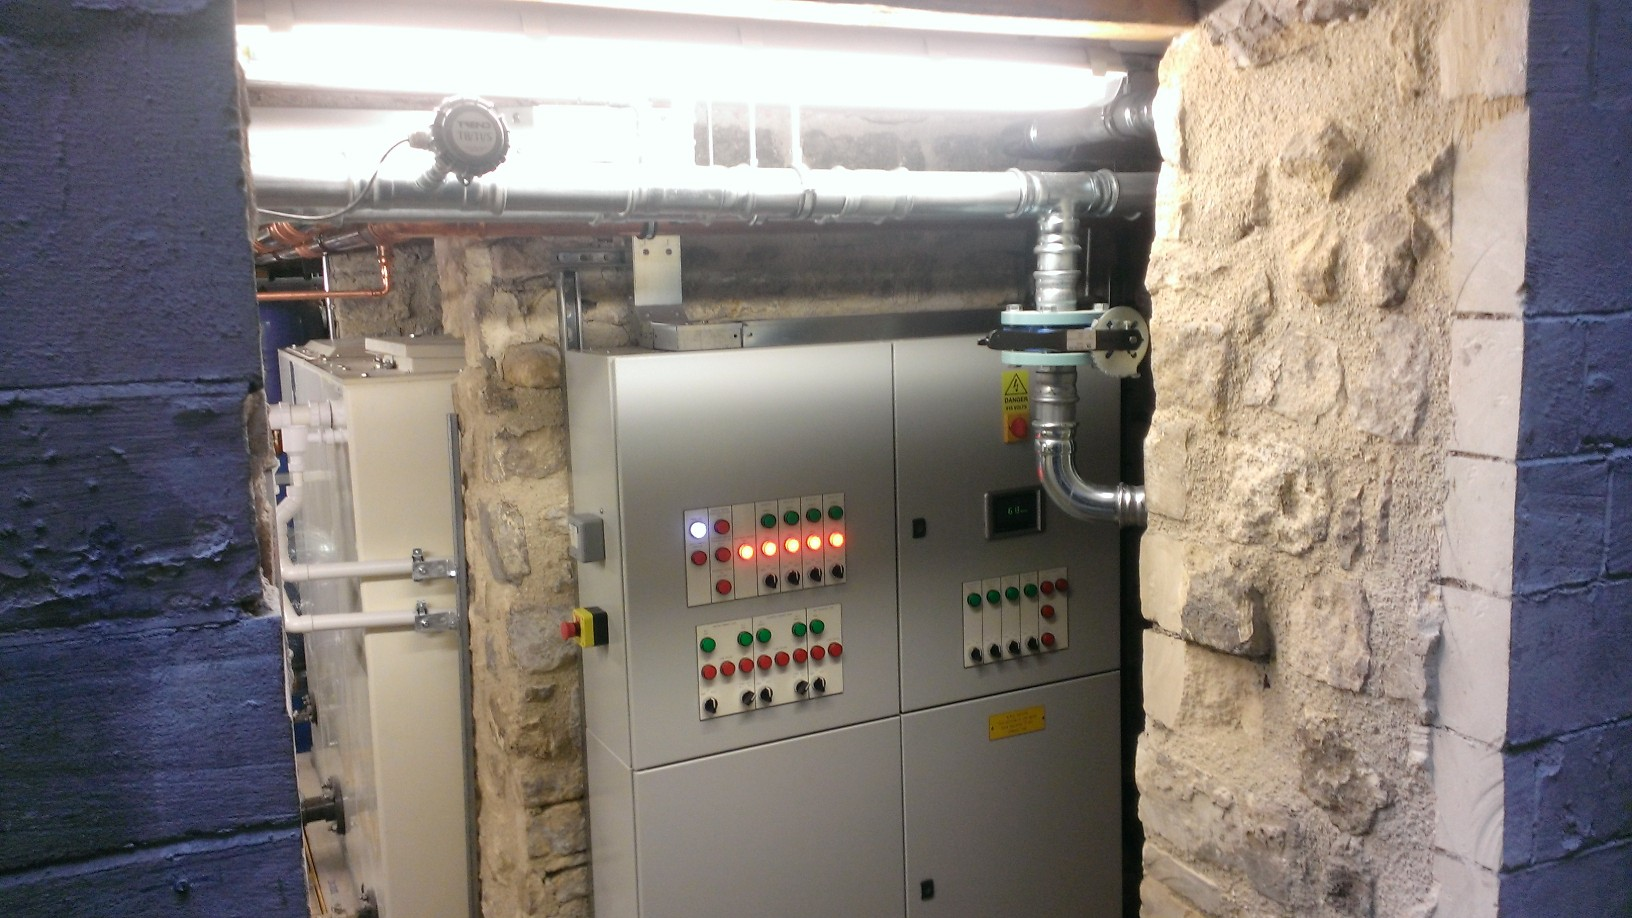 The abbey hotel commercial electrical system